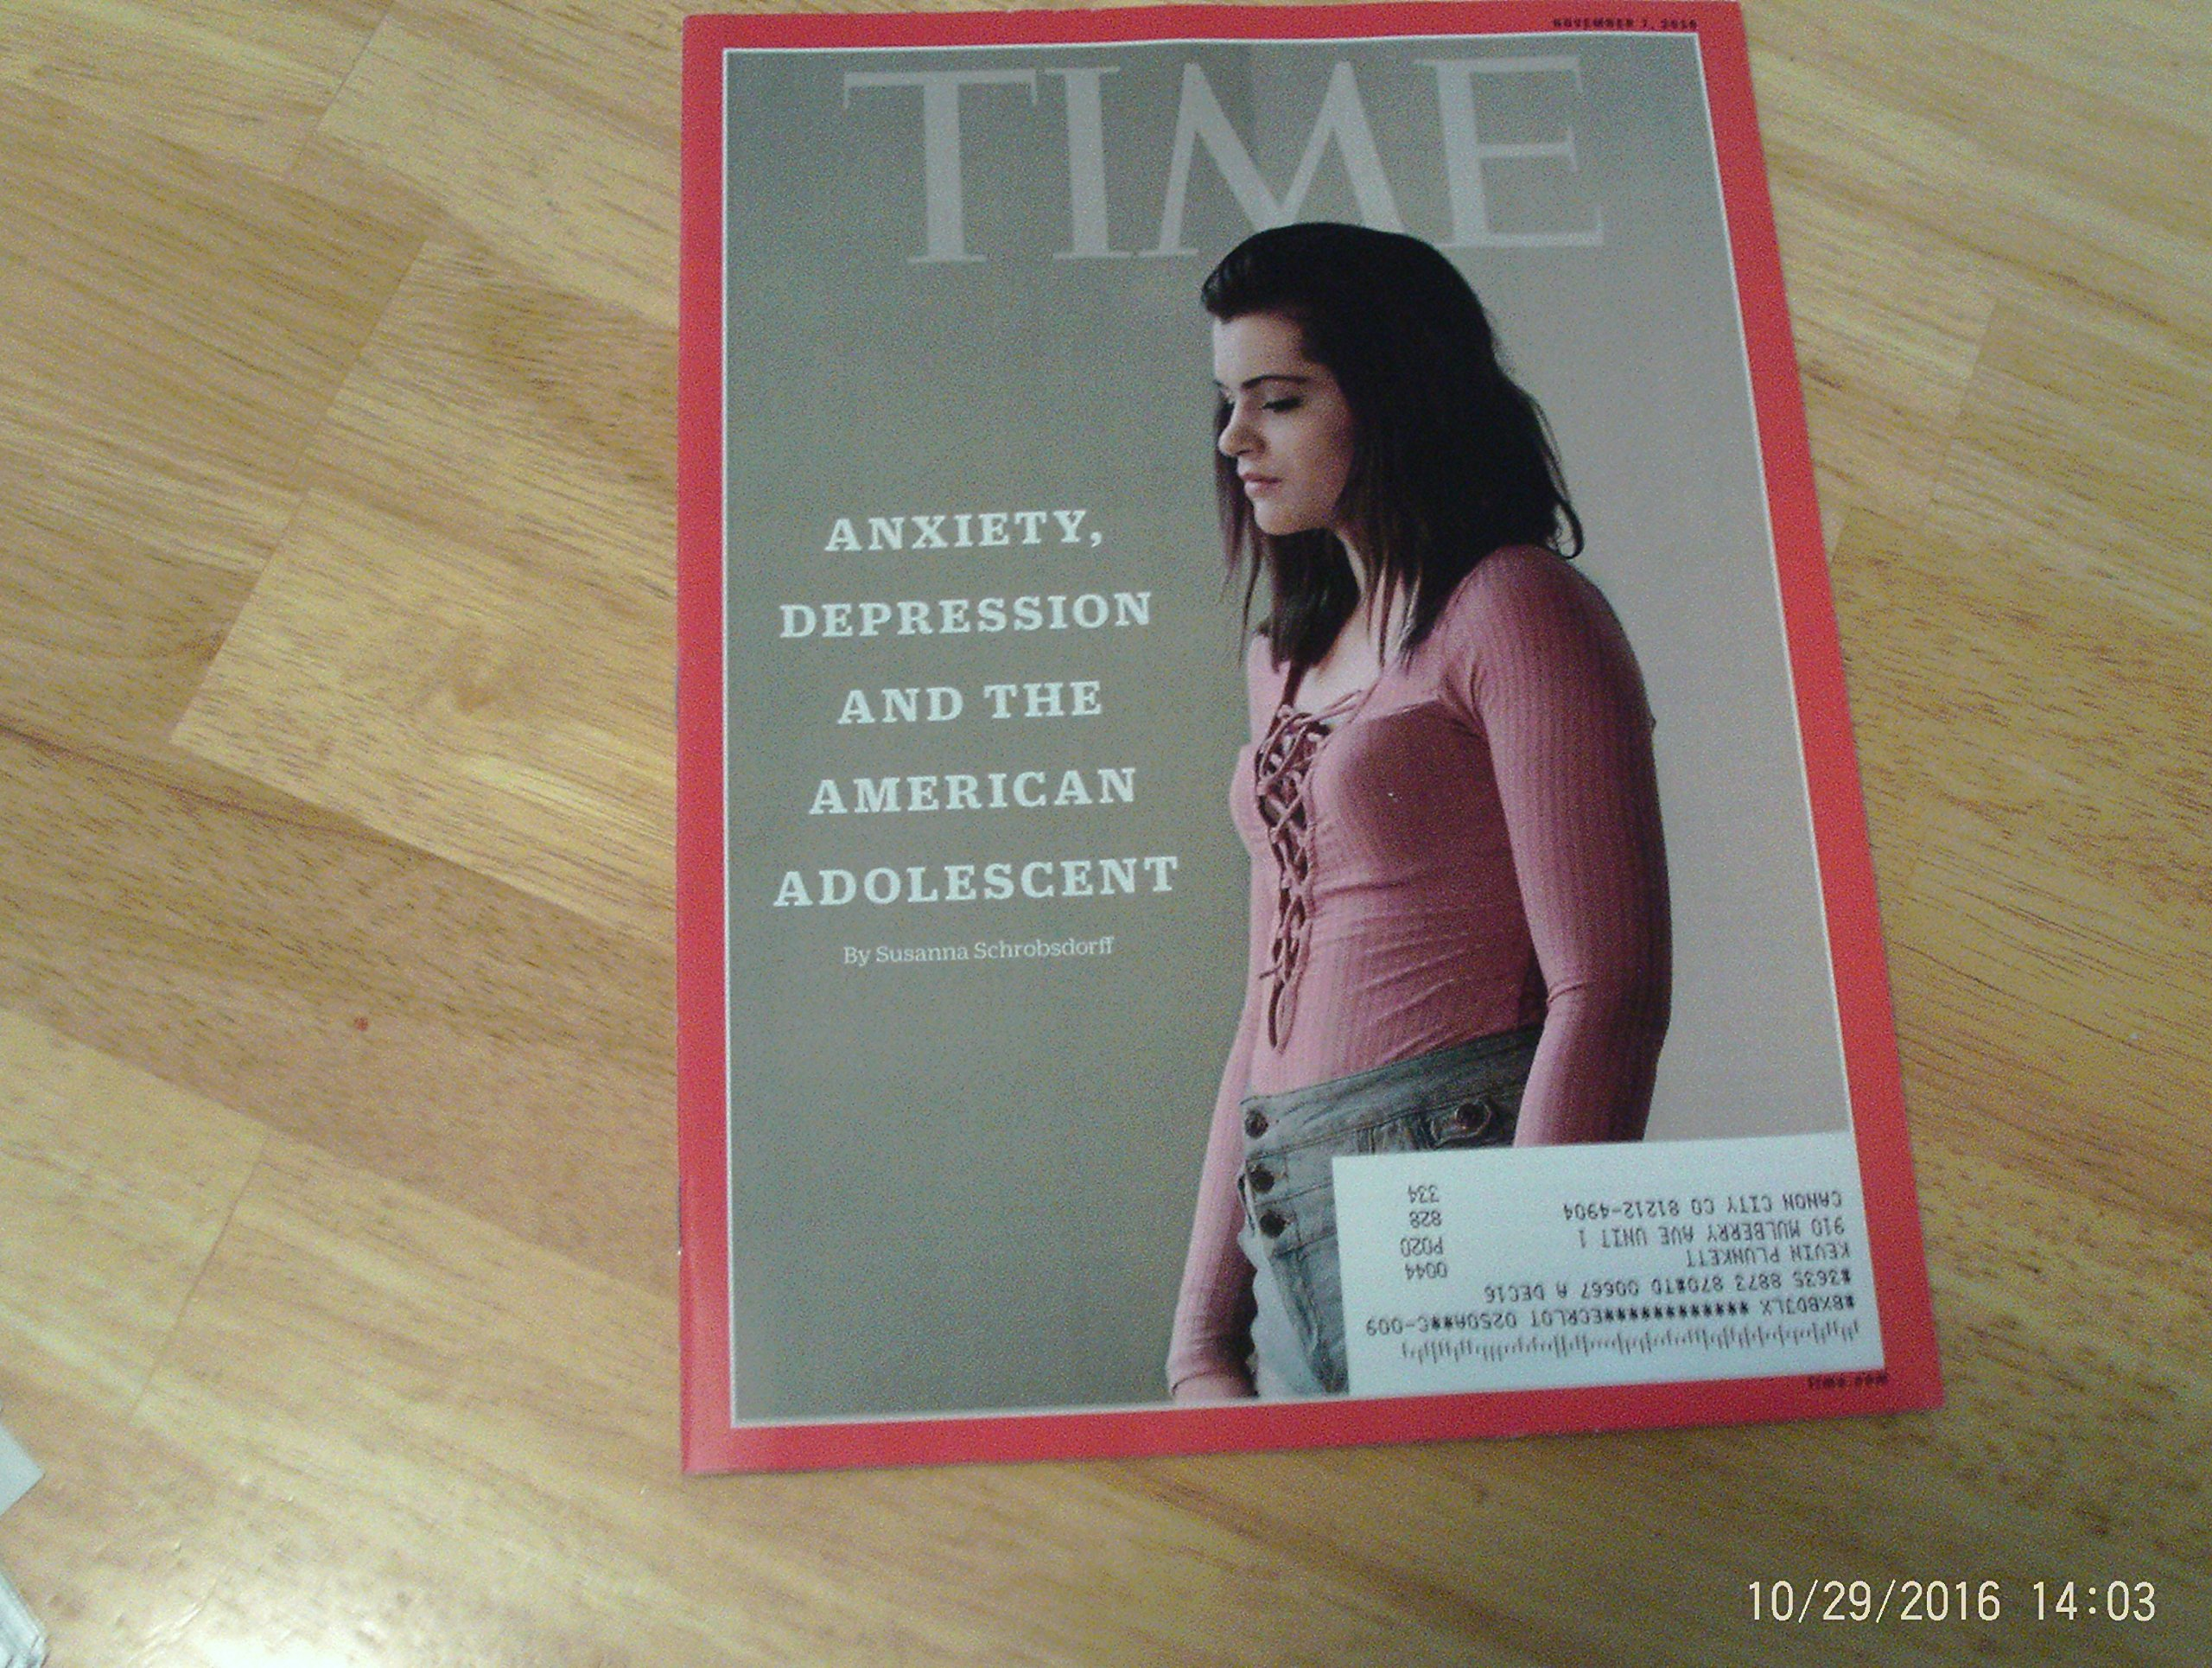 Read Online Time November 7 2016 Anxiety, Depression & the American Adolescent PDF